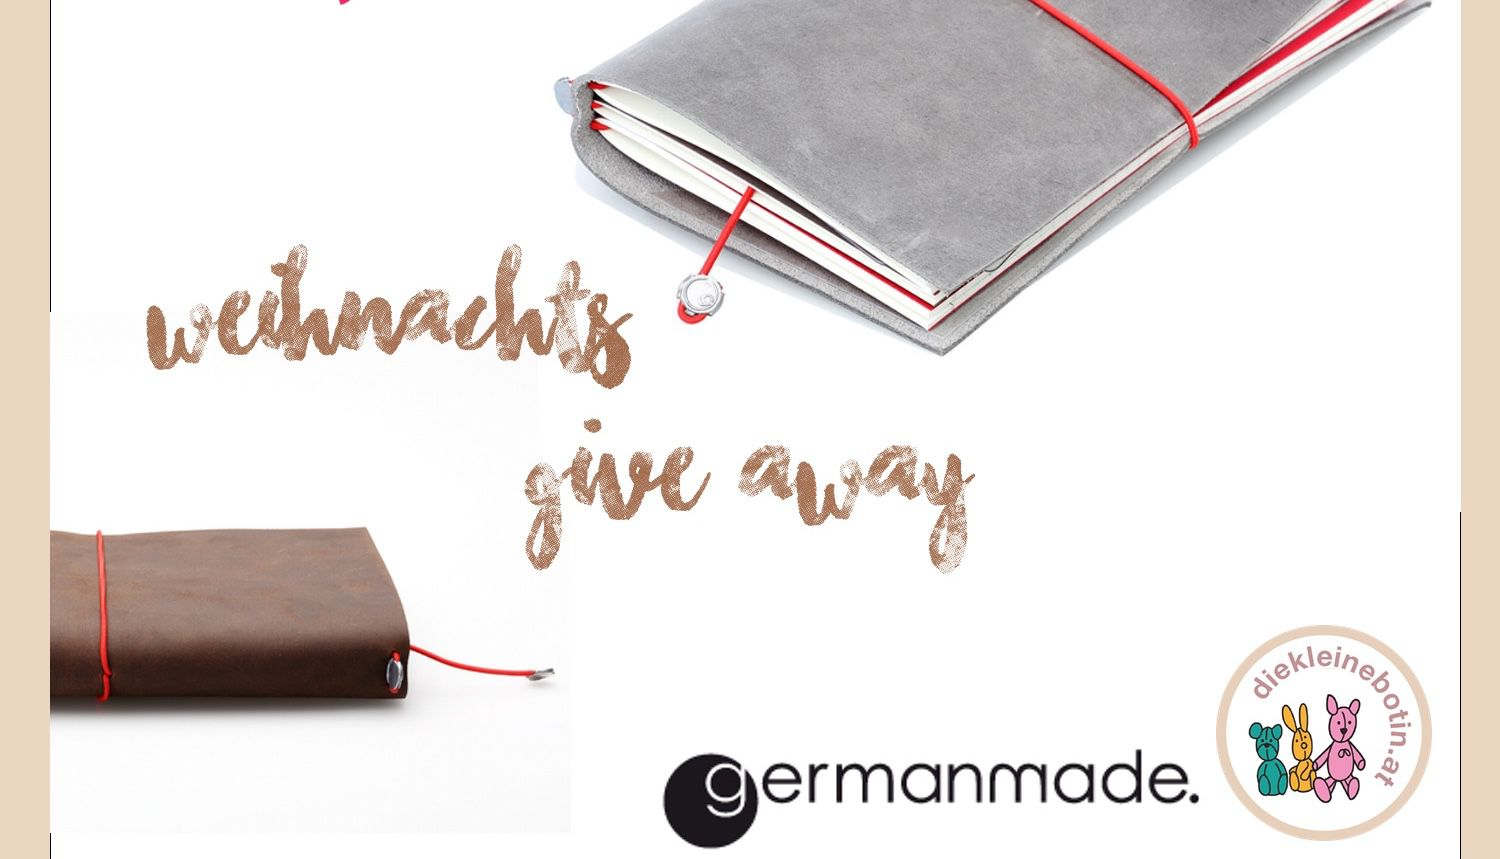 germanmade gbook giveaway die kleine botin slider